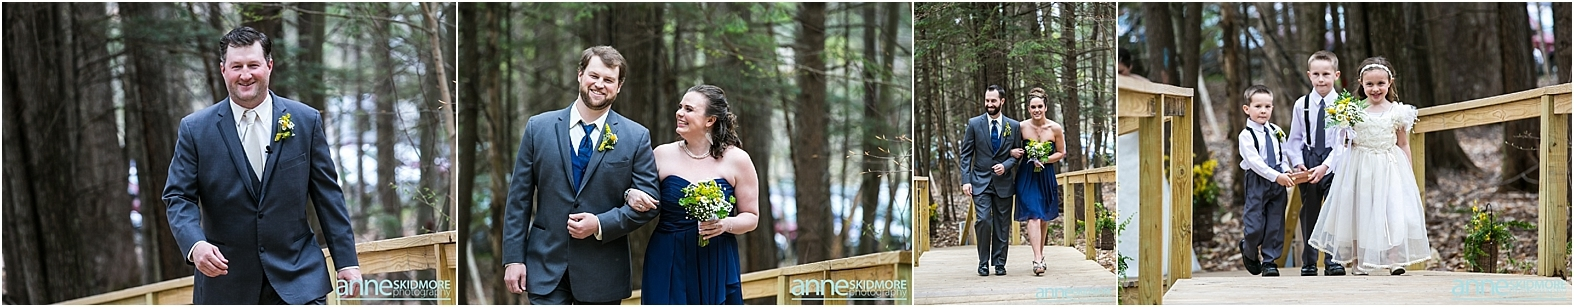 Hardy_Farm_Wedding_0020